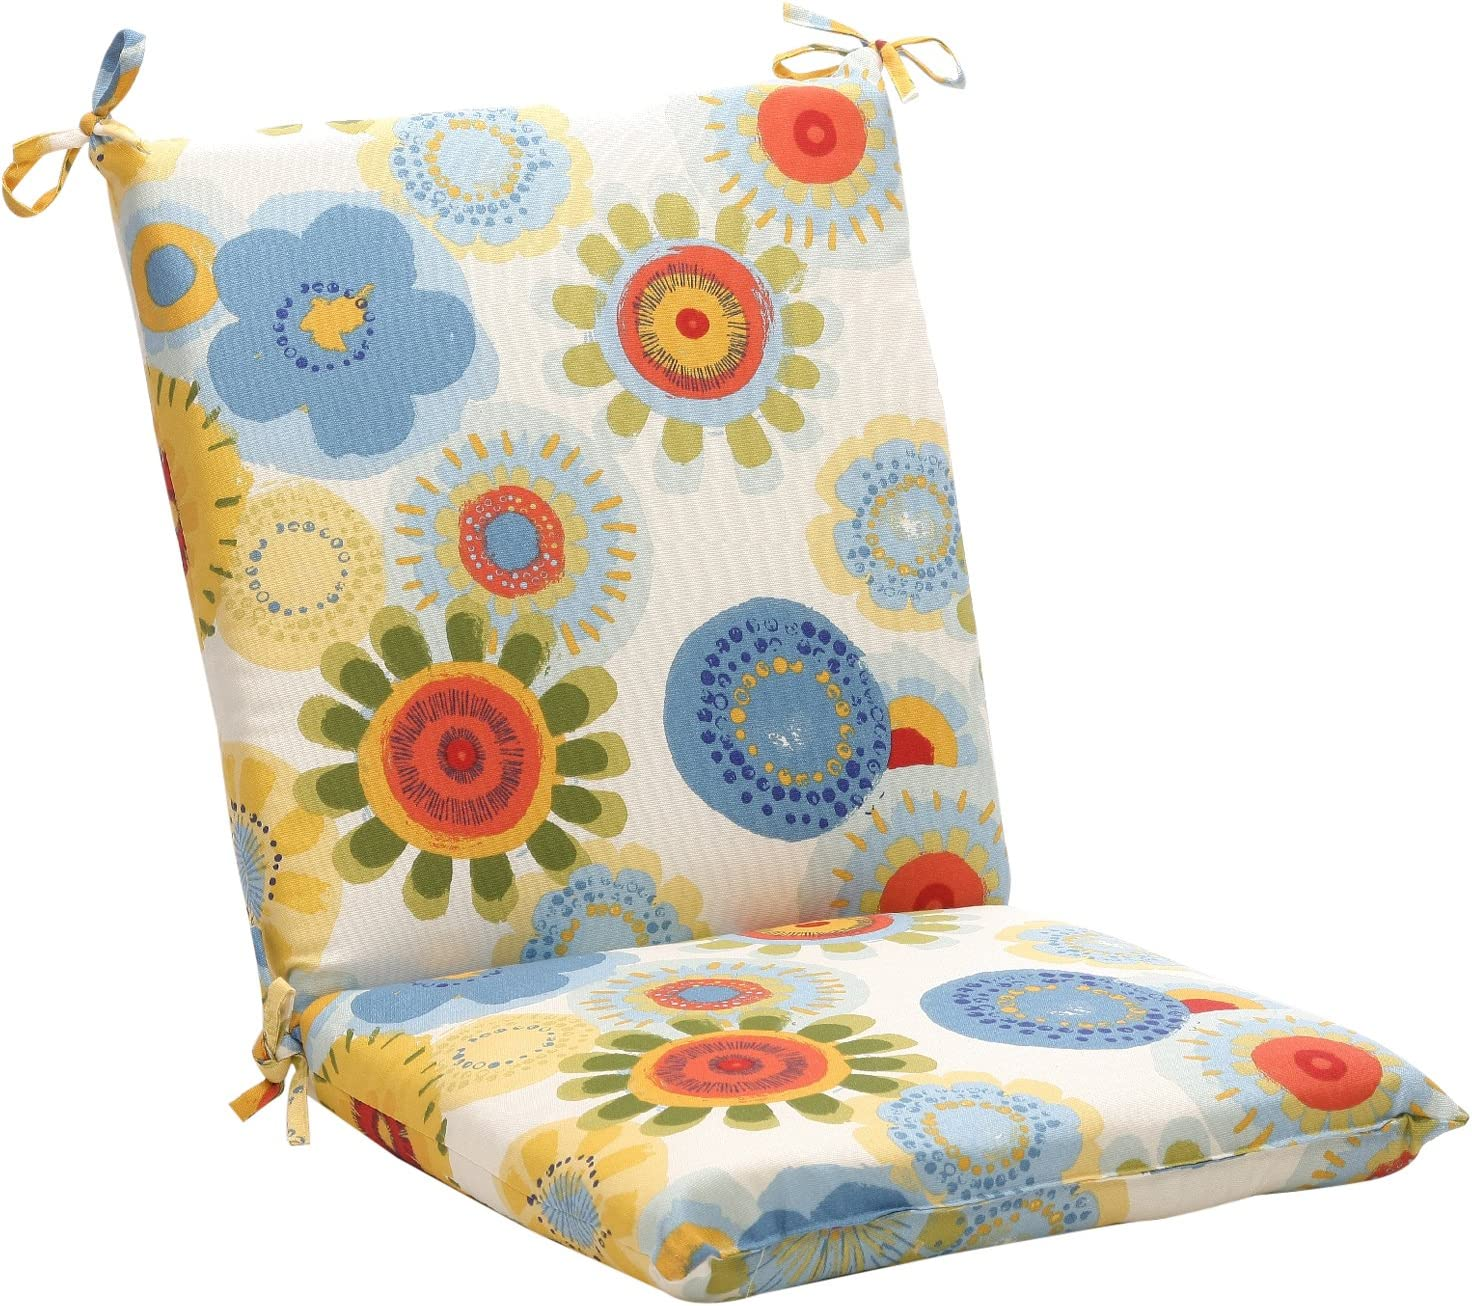 Pillow Perfect Indoor Outdoor Multicolored Floral Square Chair Cushion